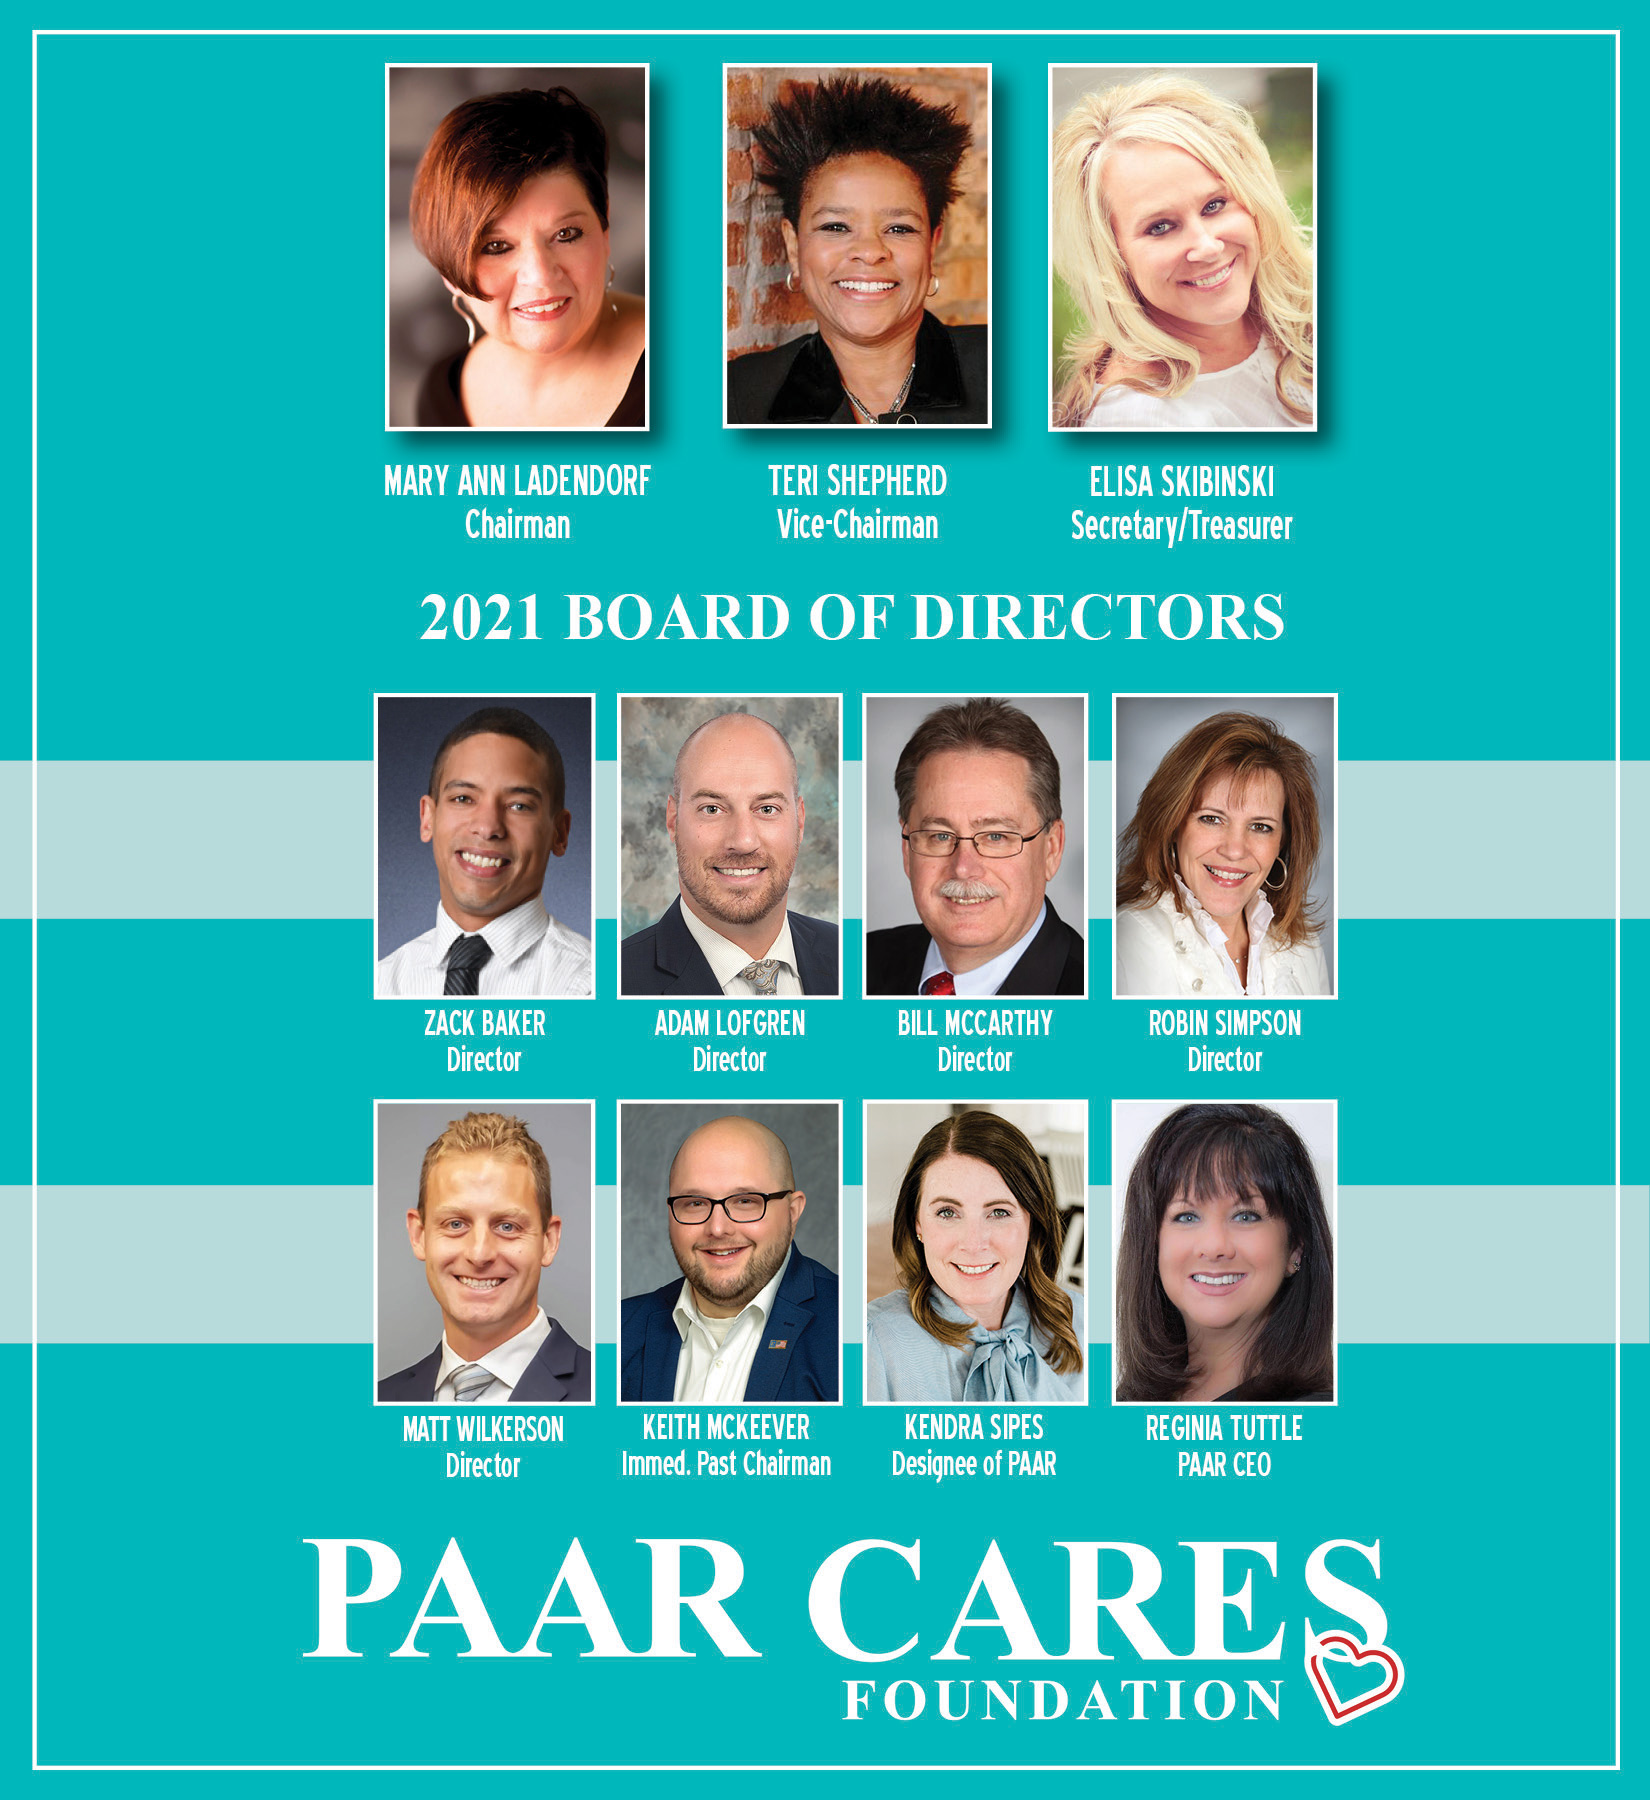 PAAR CARES Board of Directors